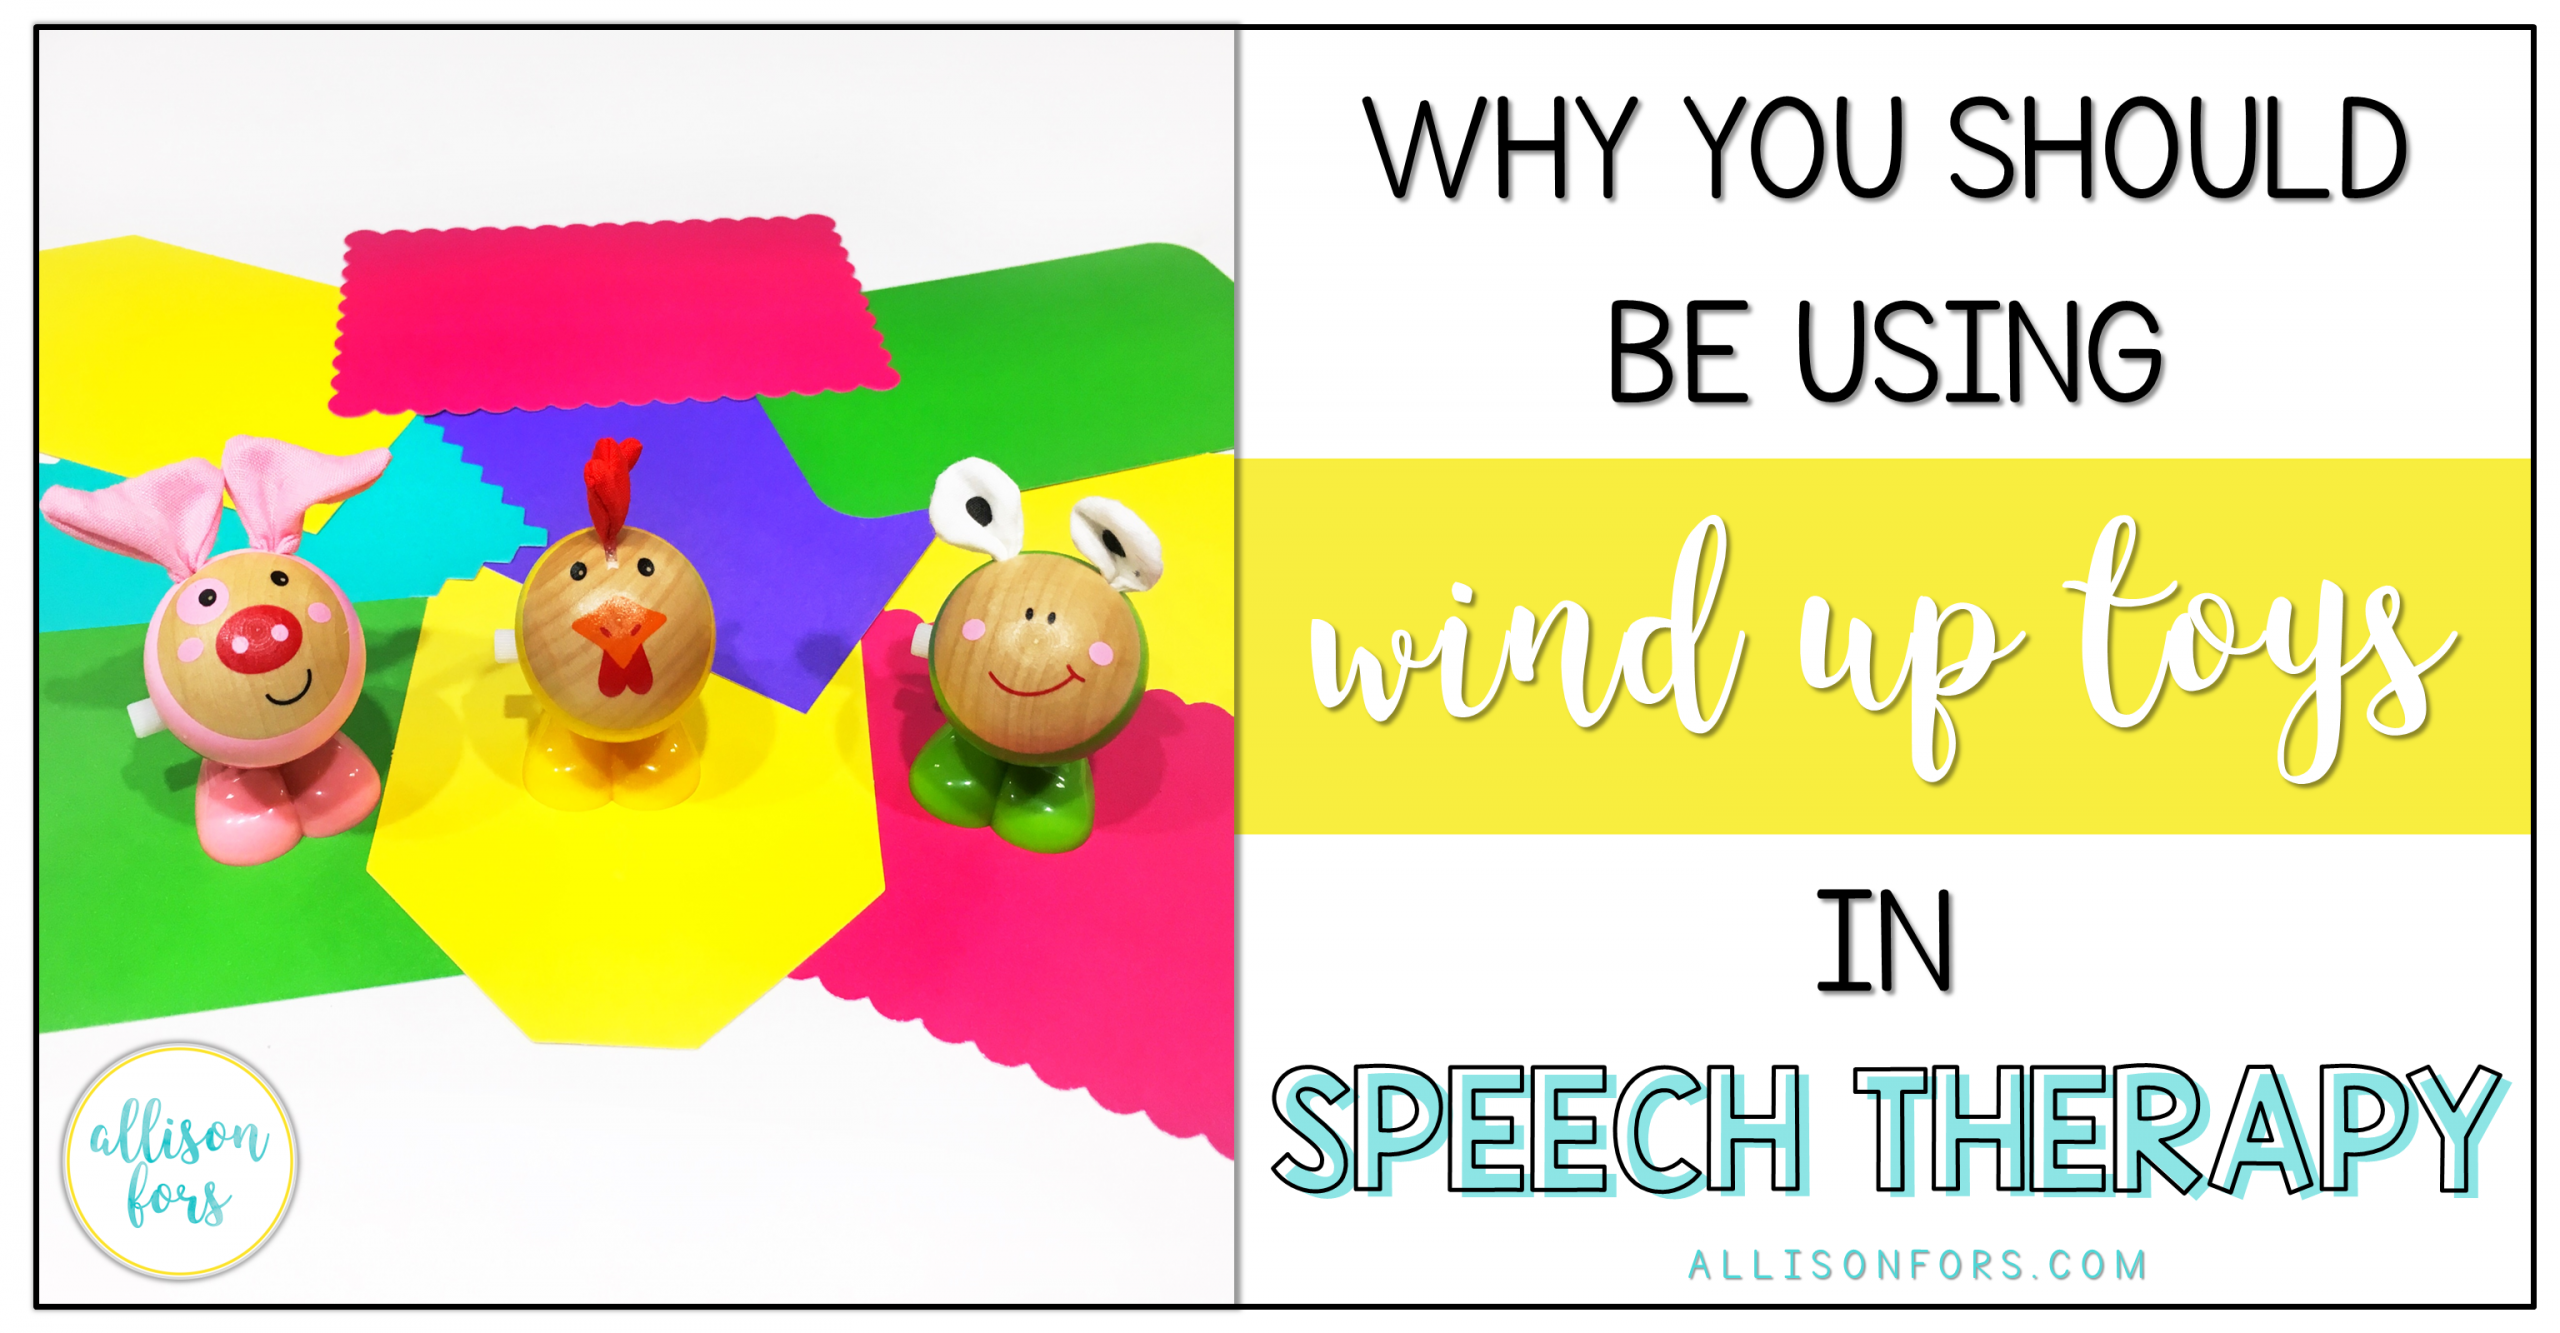 Why You Should be Using Wind Up Toys in Speech Therapy